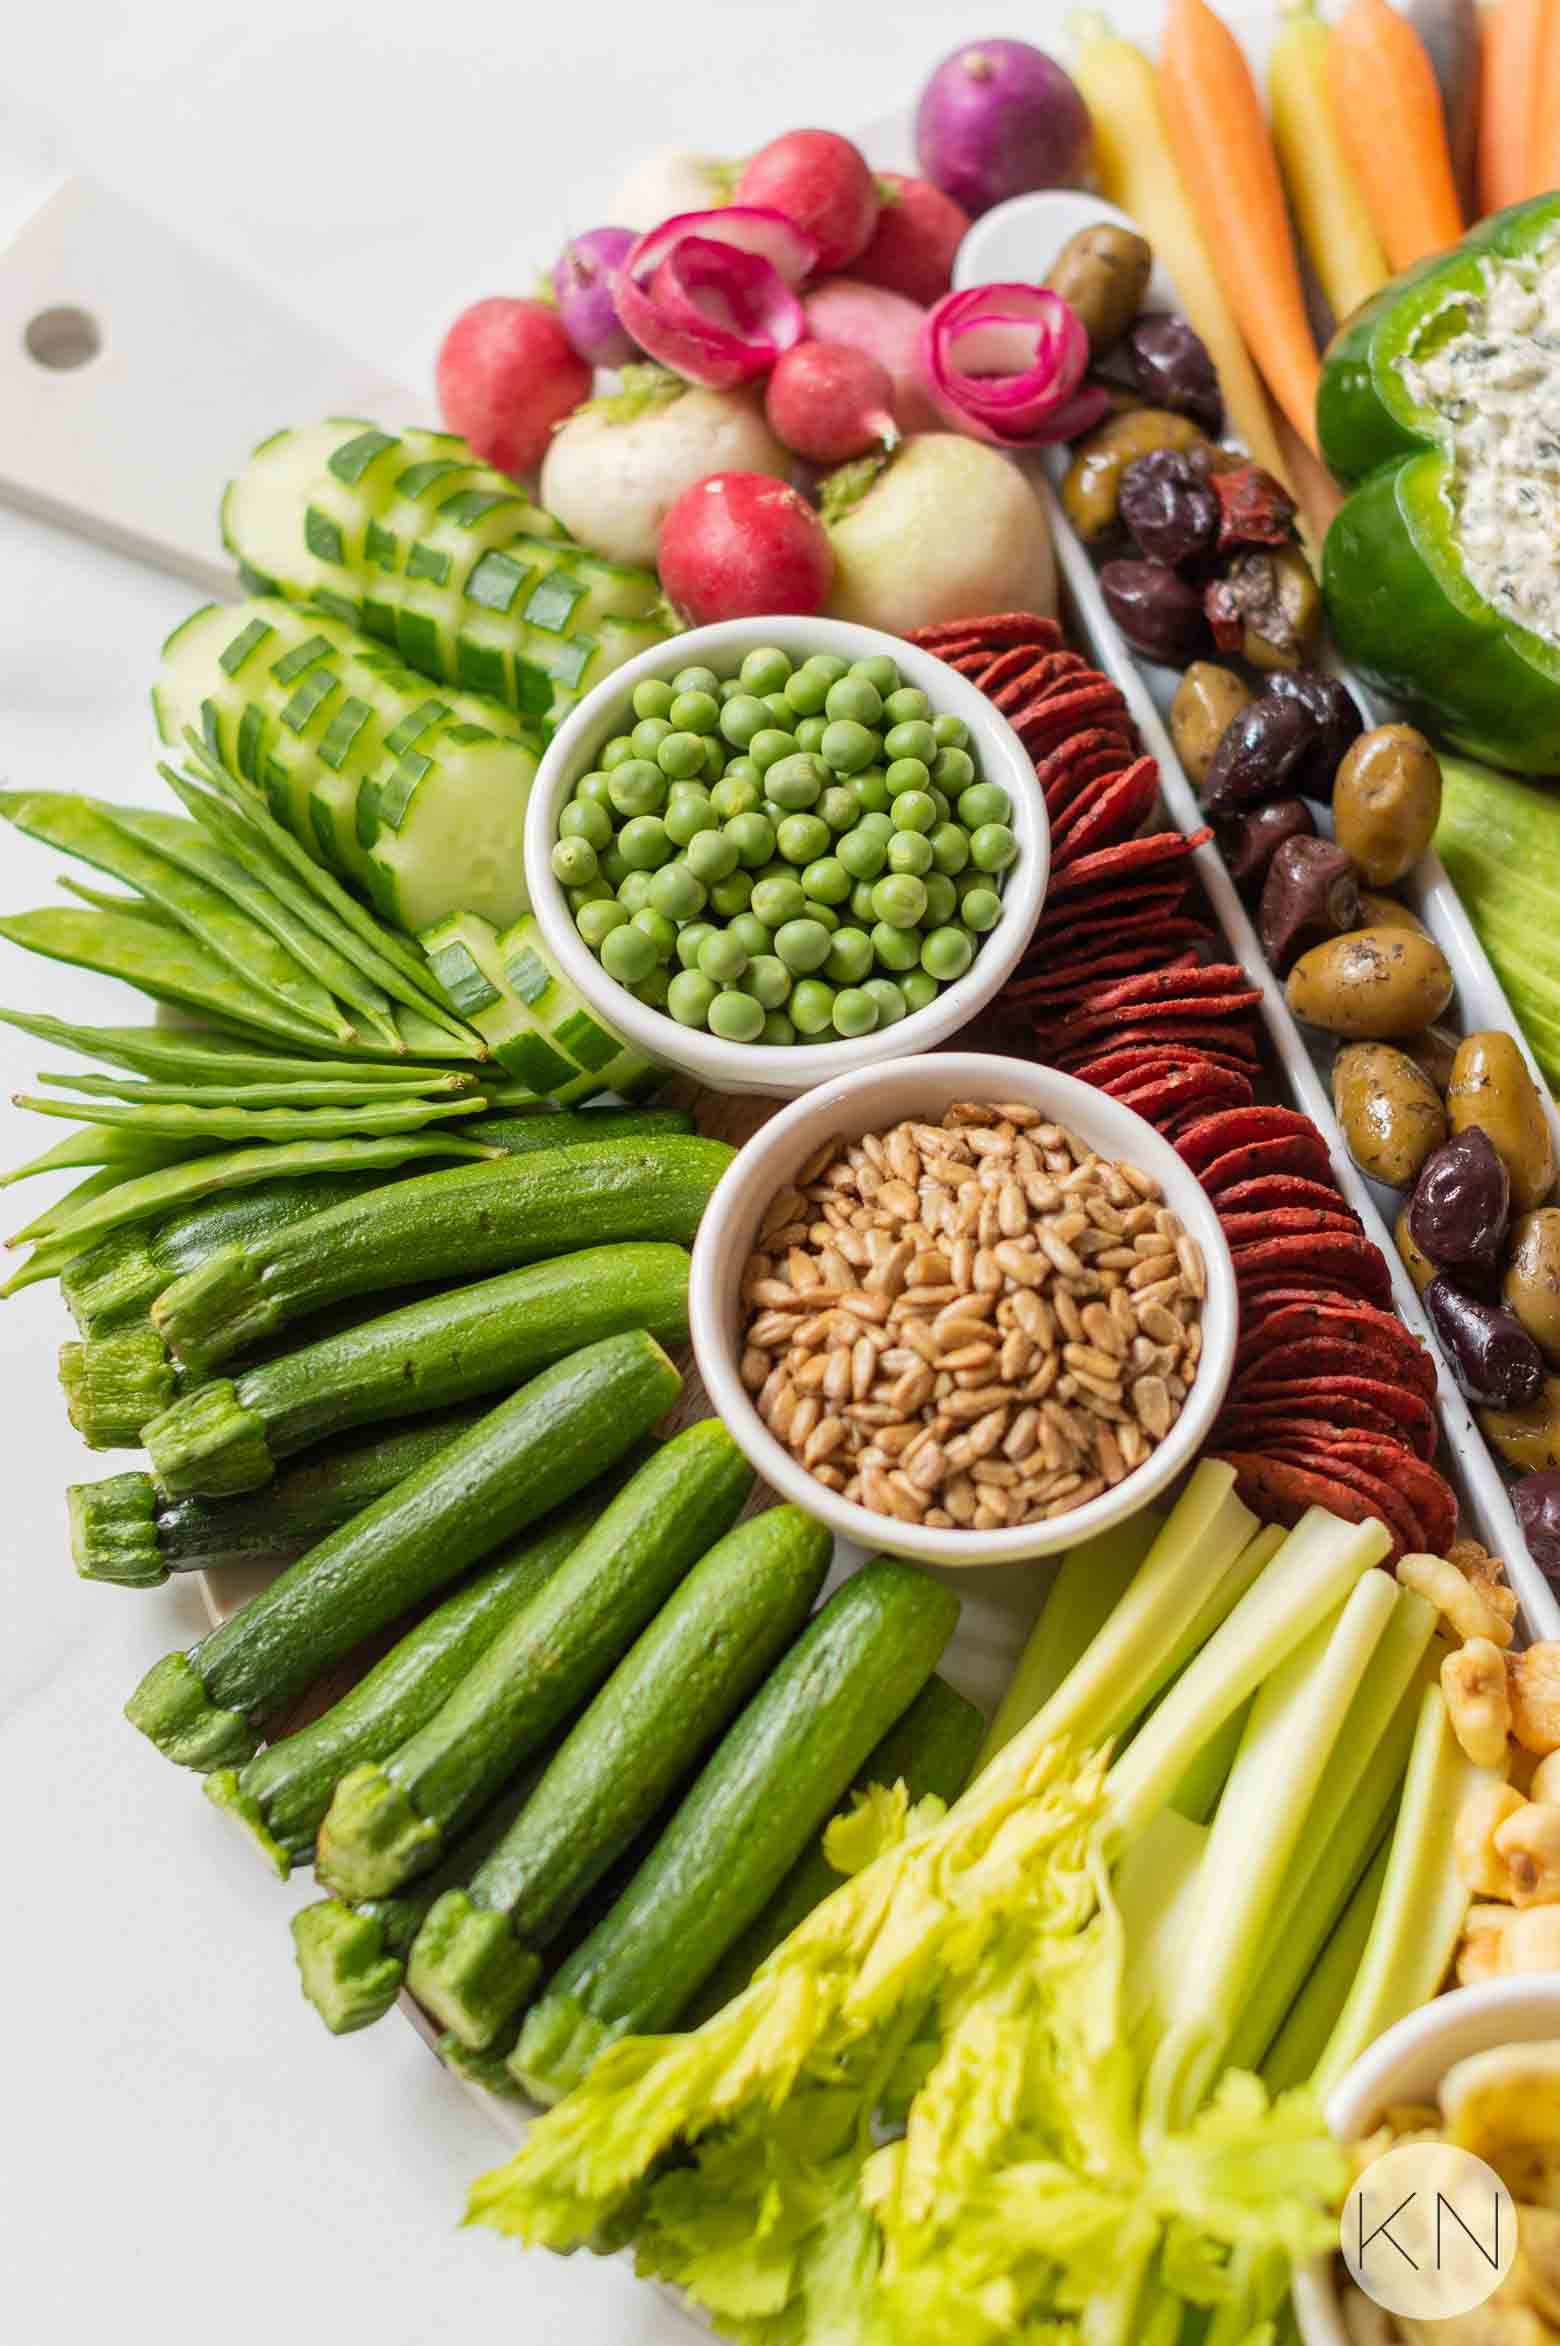 Crudité Board Ideas for Your Next Party, Shower or Get Together